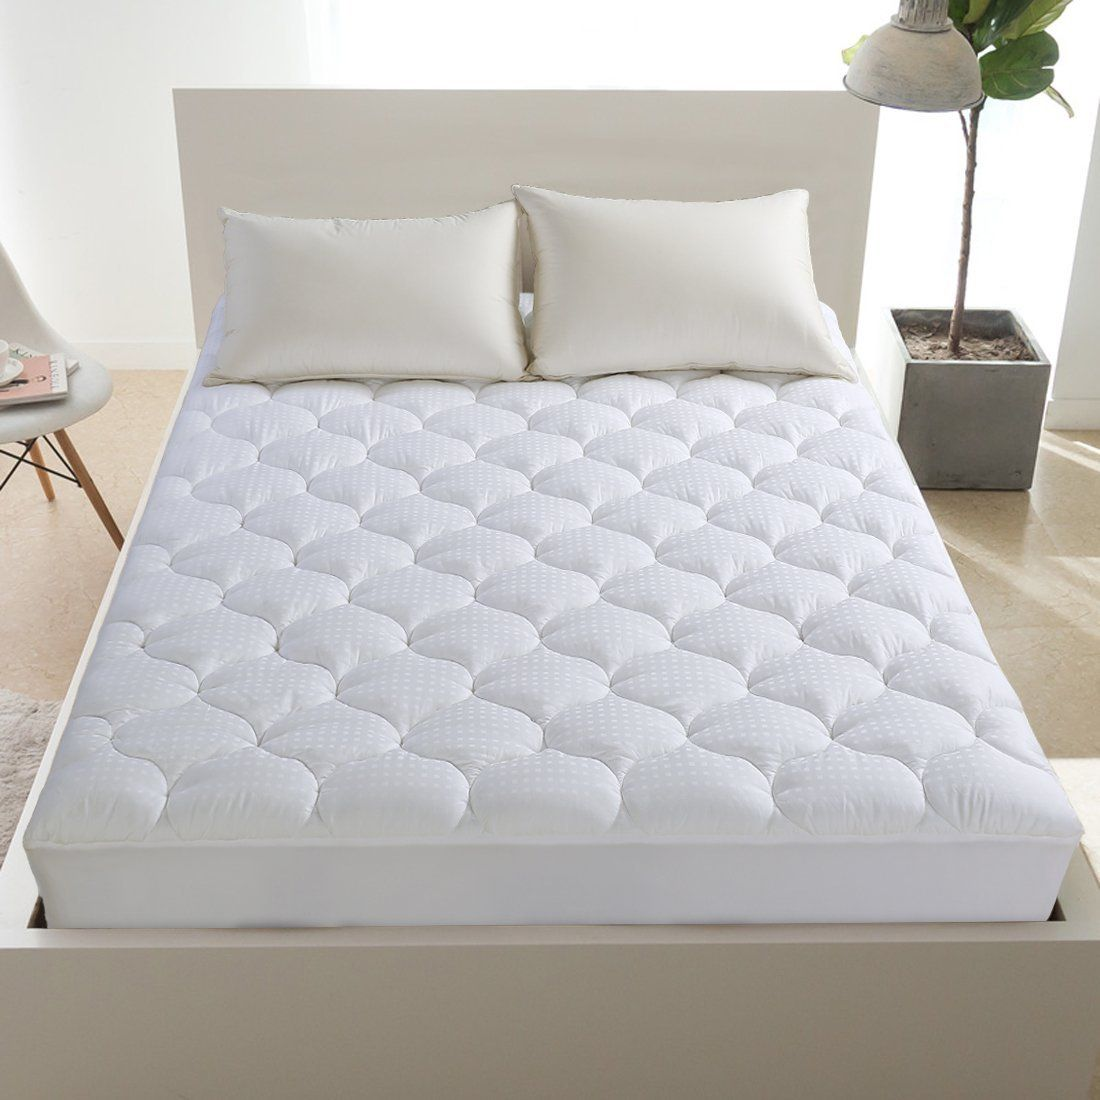 mattress pad cover 8 21 deep pocket cooling fitted mattress topper